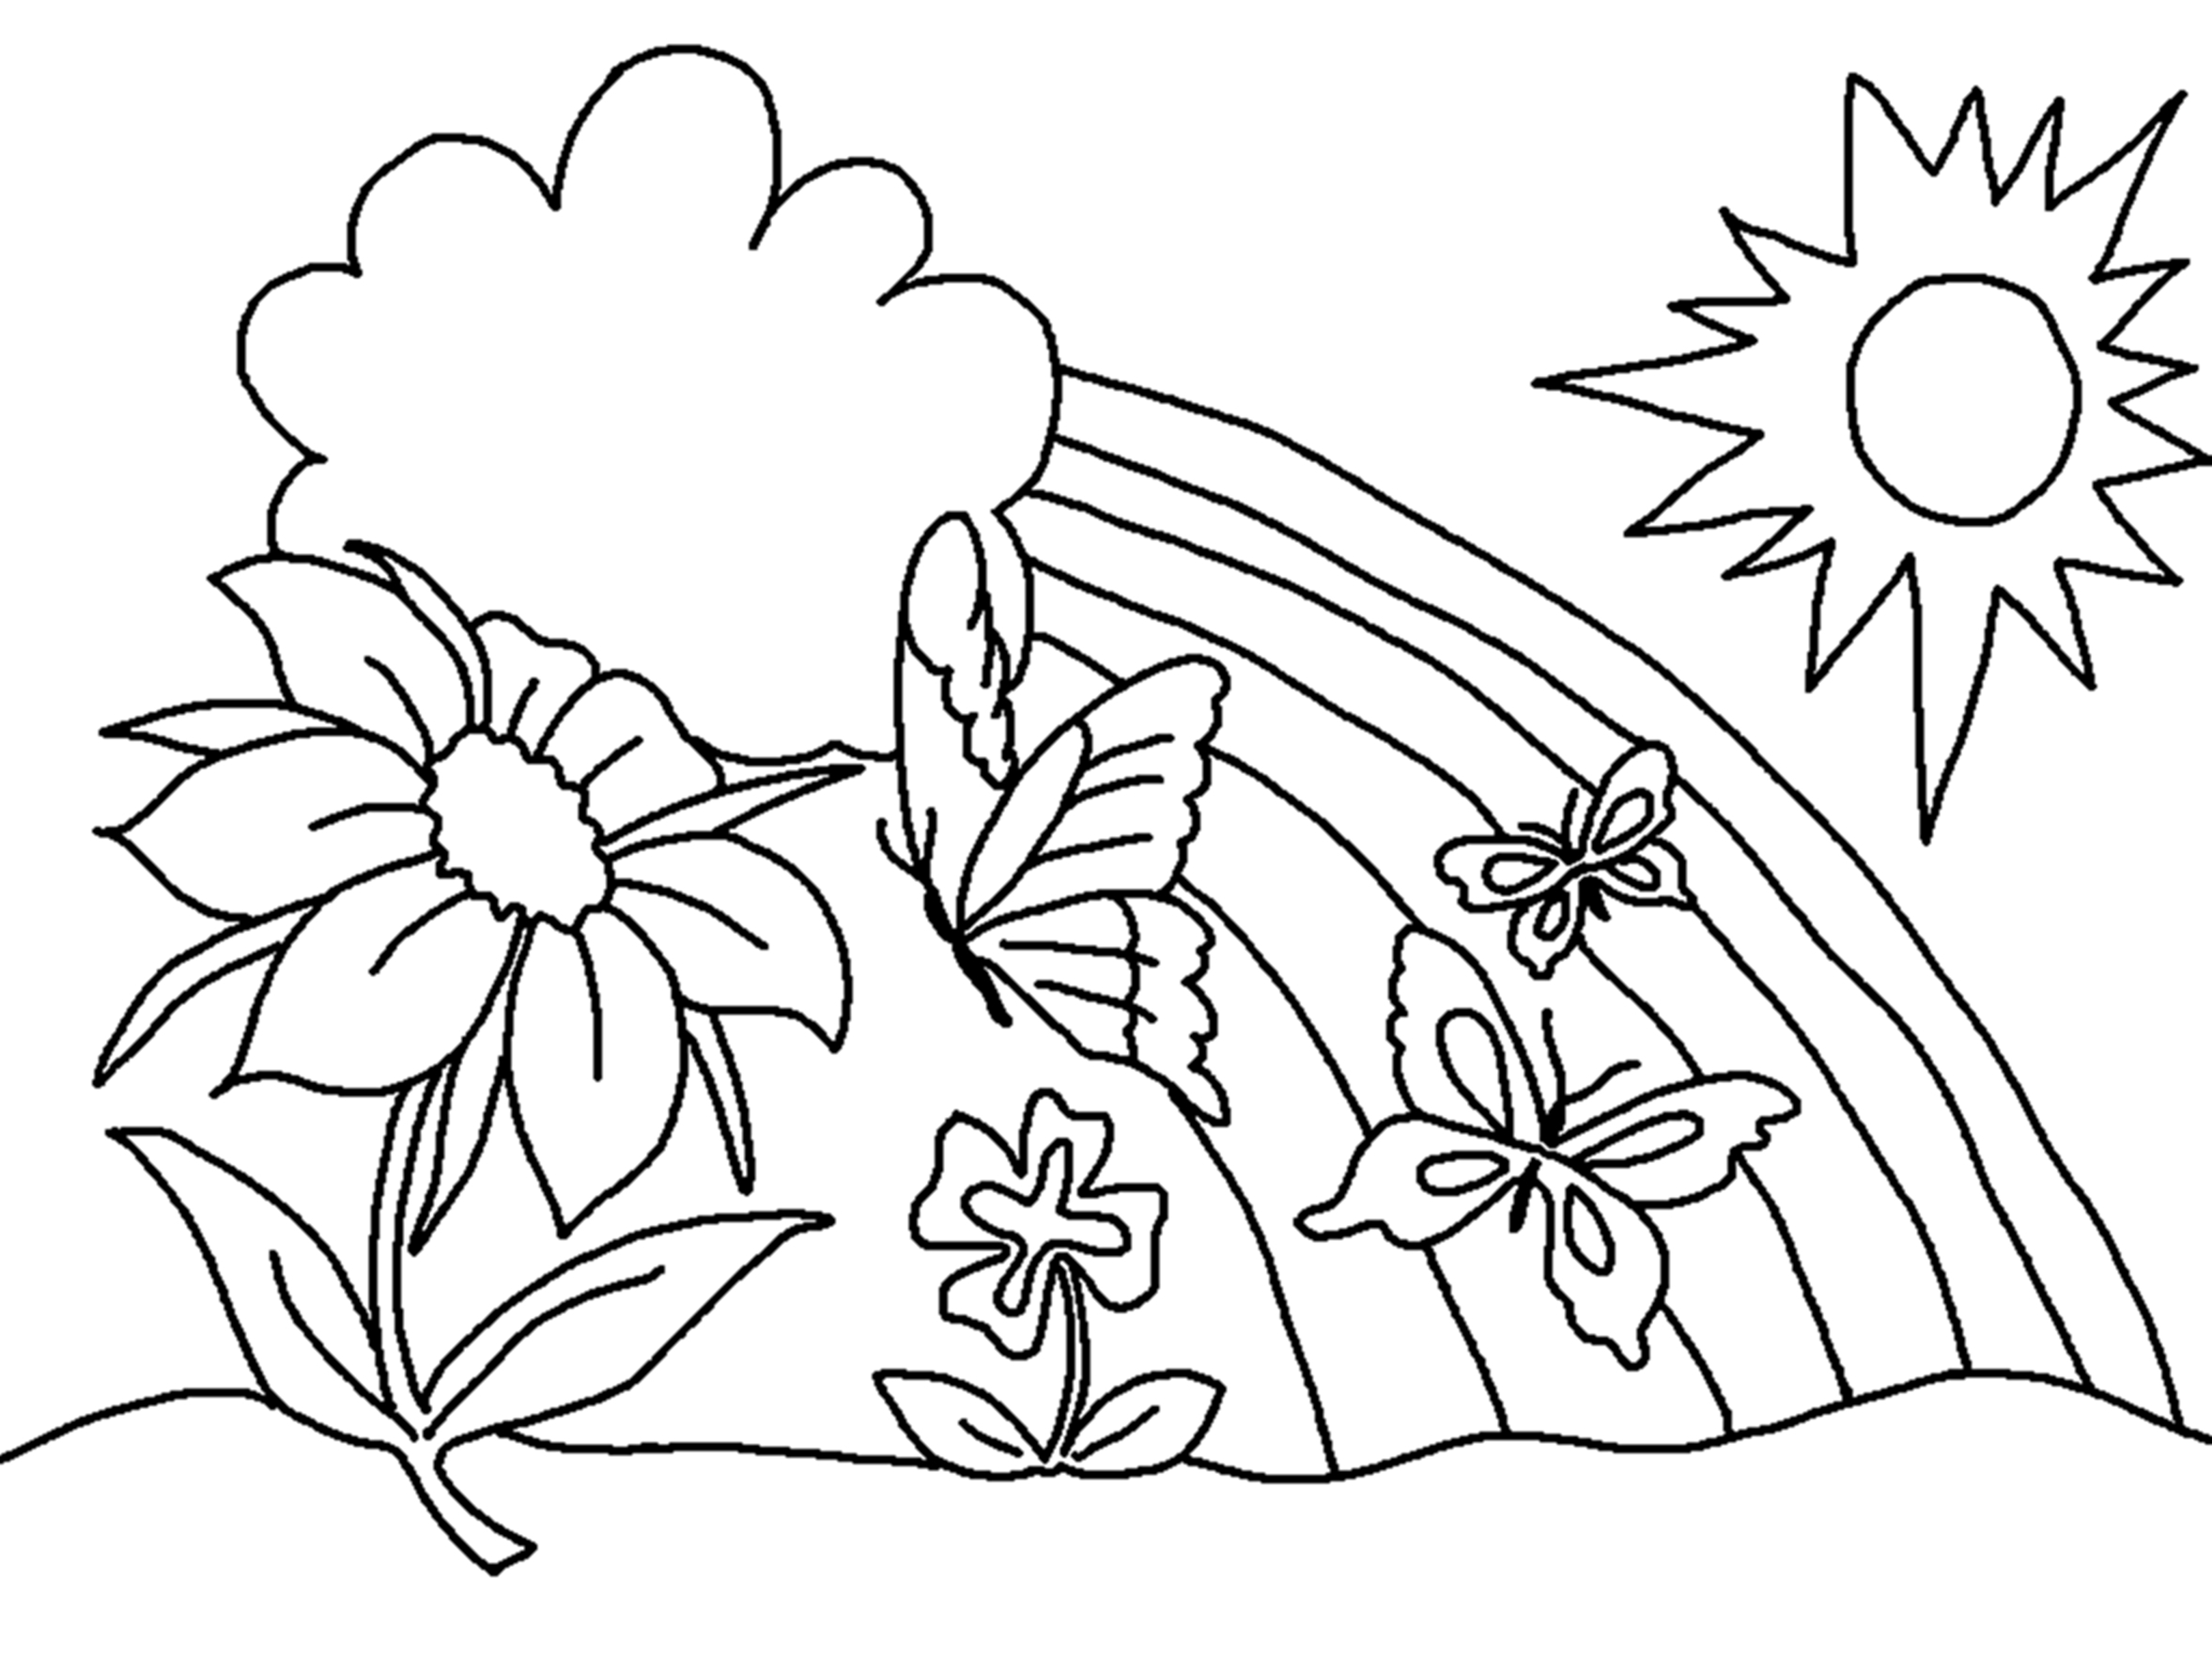 coloring pages of a flower free printable flower coloring pages for kids best coloring pages a of flower